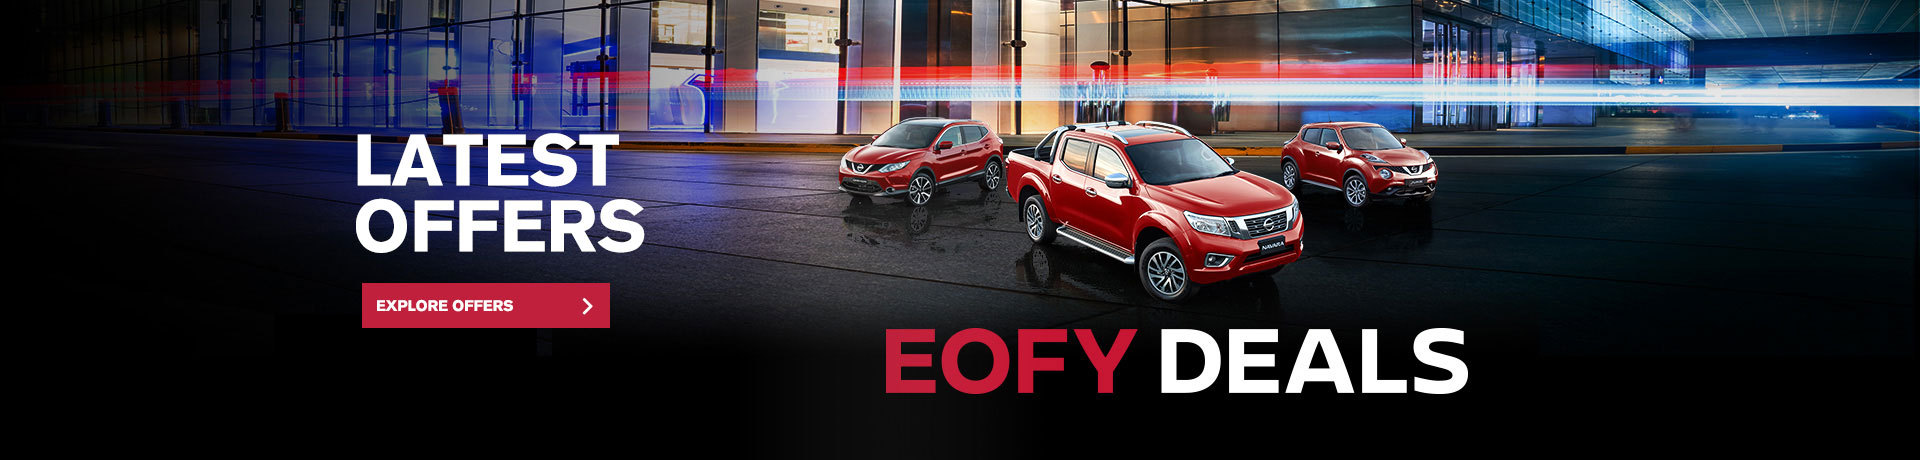 Nissan - National Offer -End Of Financial Year Savings